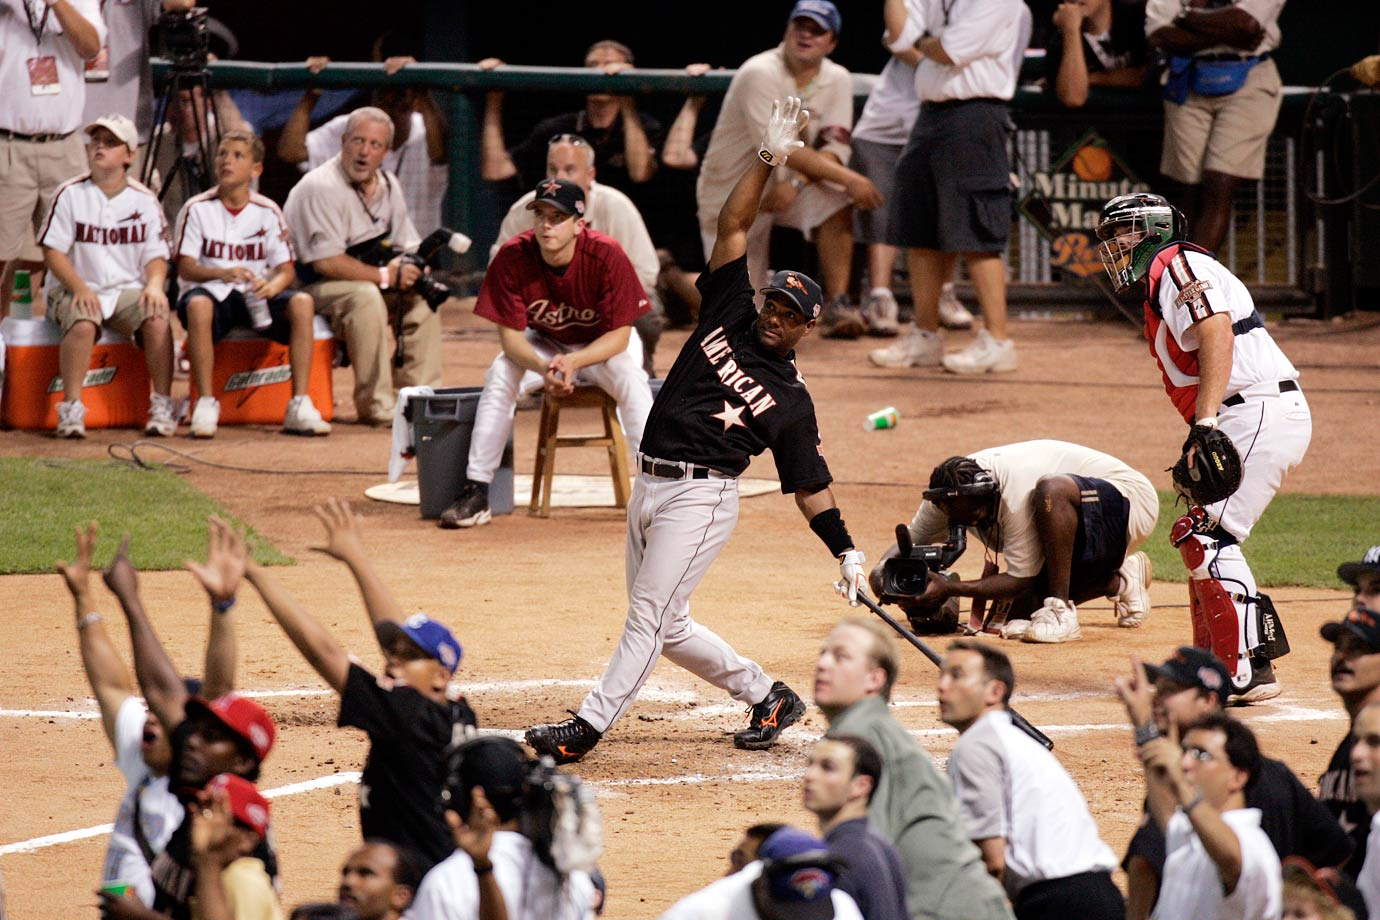 At Minute Maid Park in Houston, Miguel Tejada topped hometown favorite Lance Berkman in the final round with five home runs and an overall total of 27.